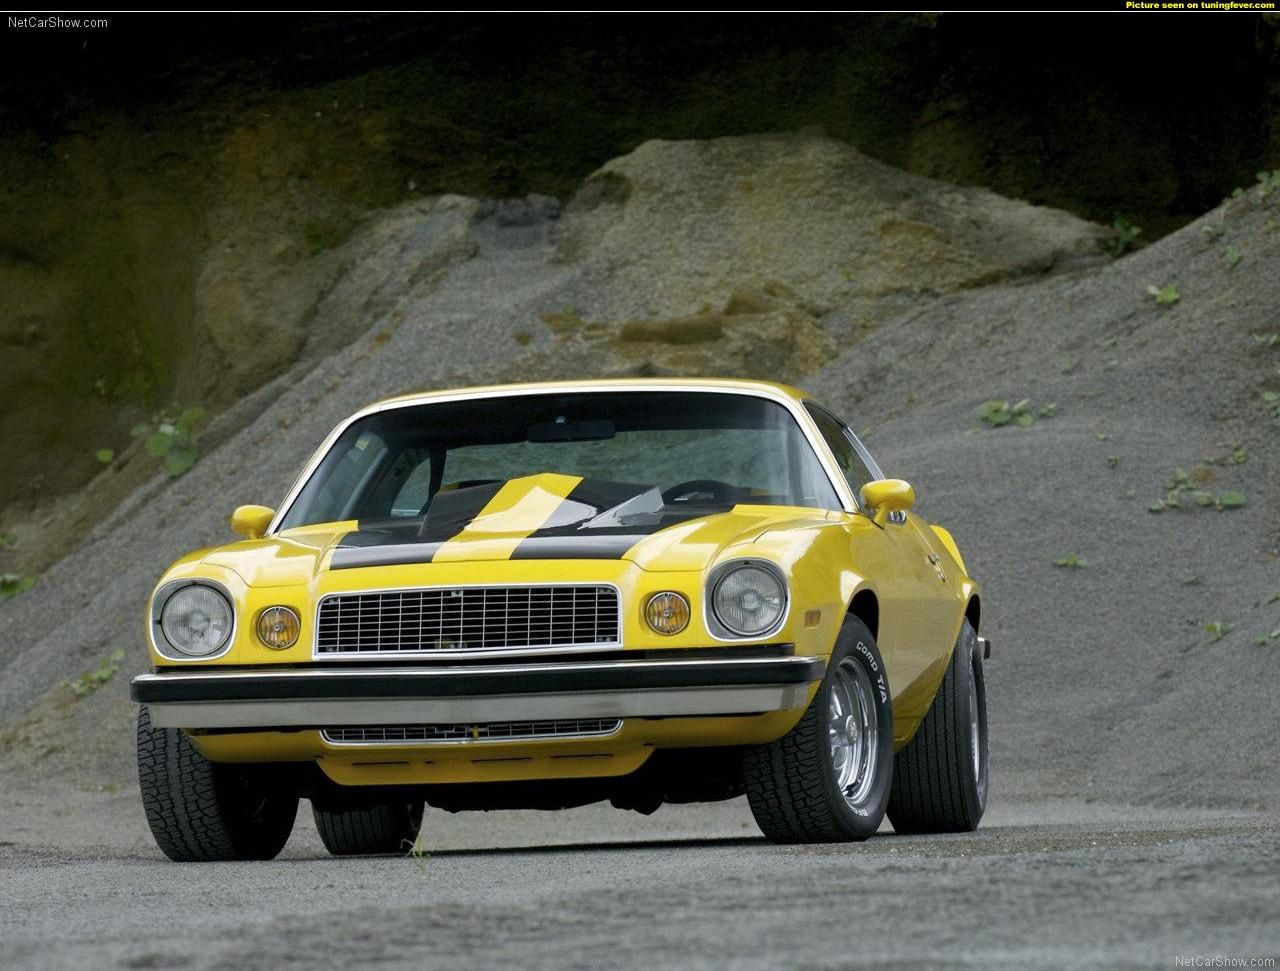 1976 chevrolet camaro lt rally sport bumblebee dark cars wallpapers. Black Bedroom Furniture Sets. Home Design Ideas